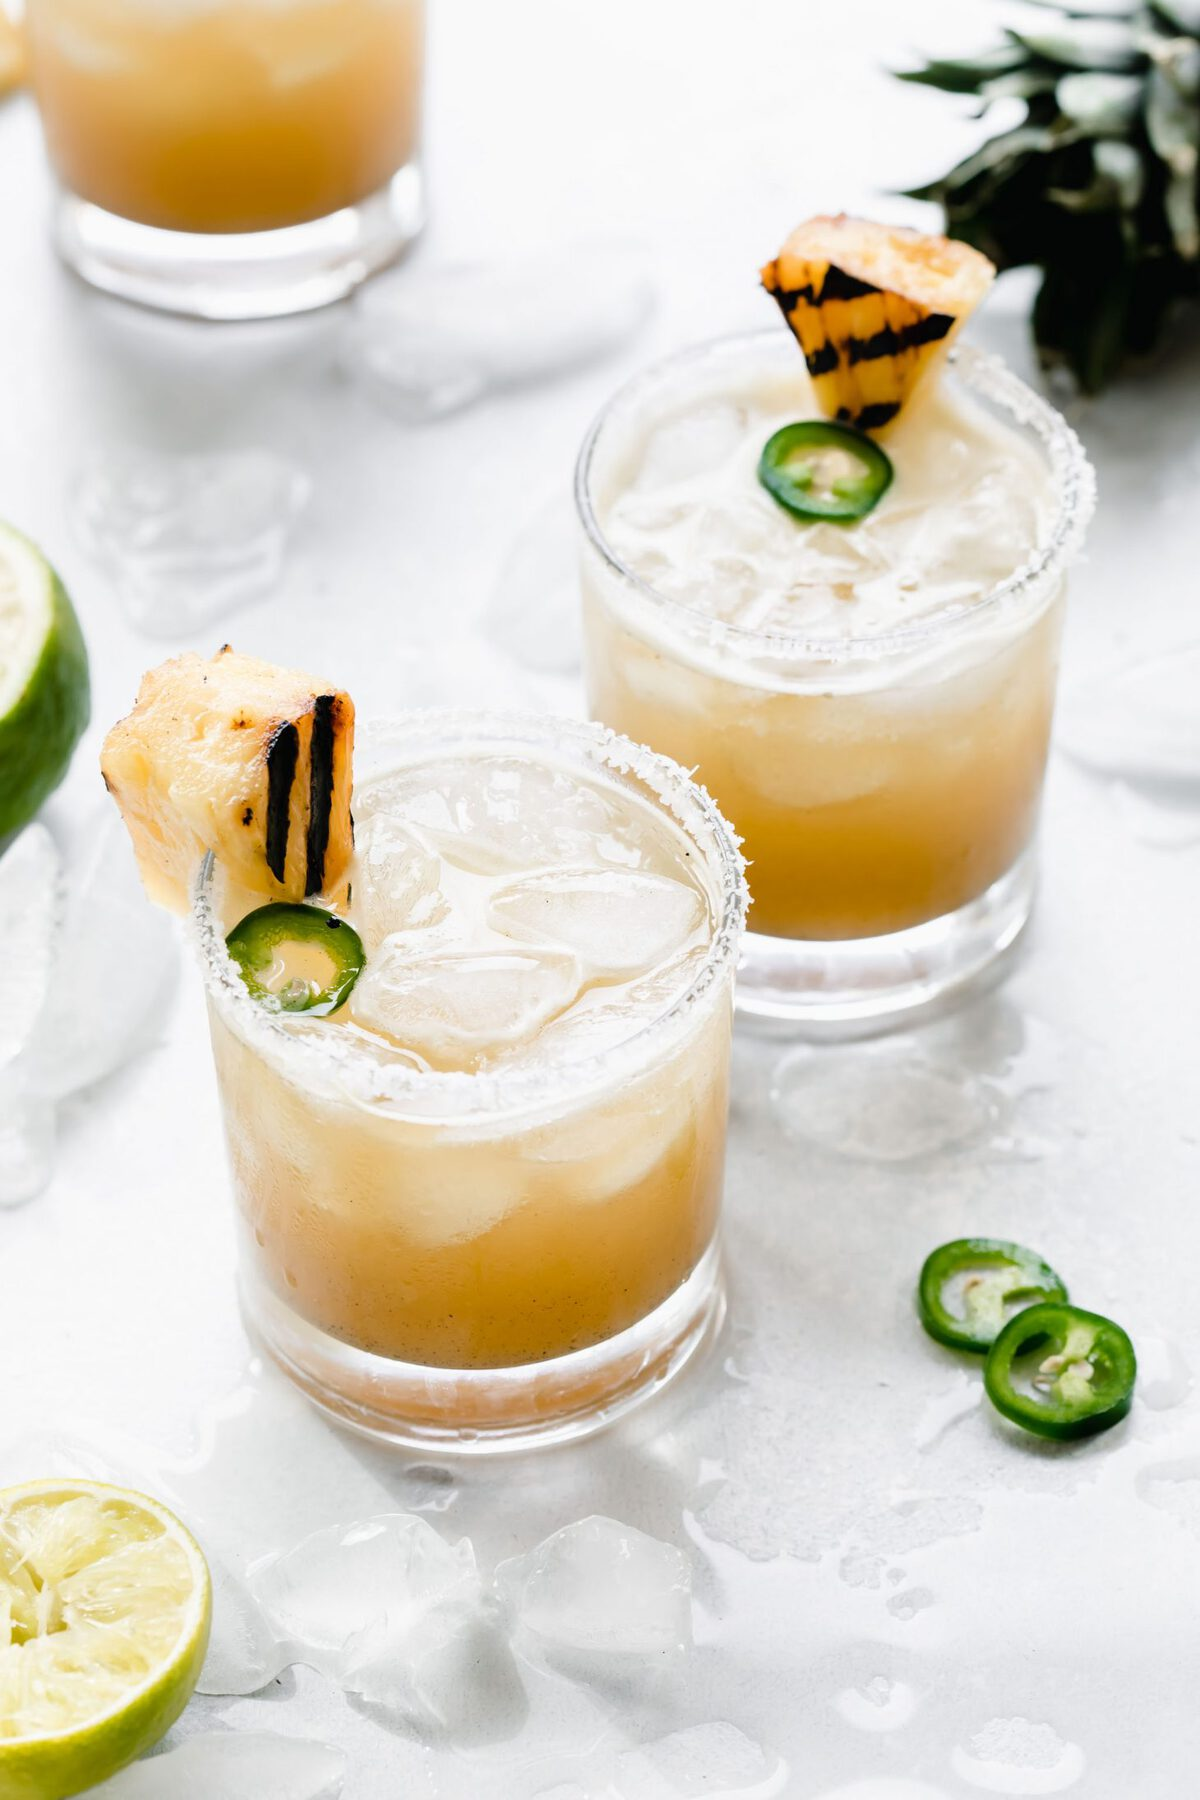 Two Grilled Pineapple Jalapeno Margaritas topped with grilled pineapple and jalapeno slices.